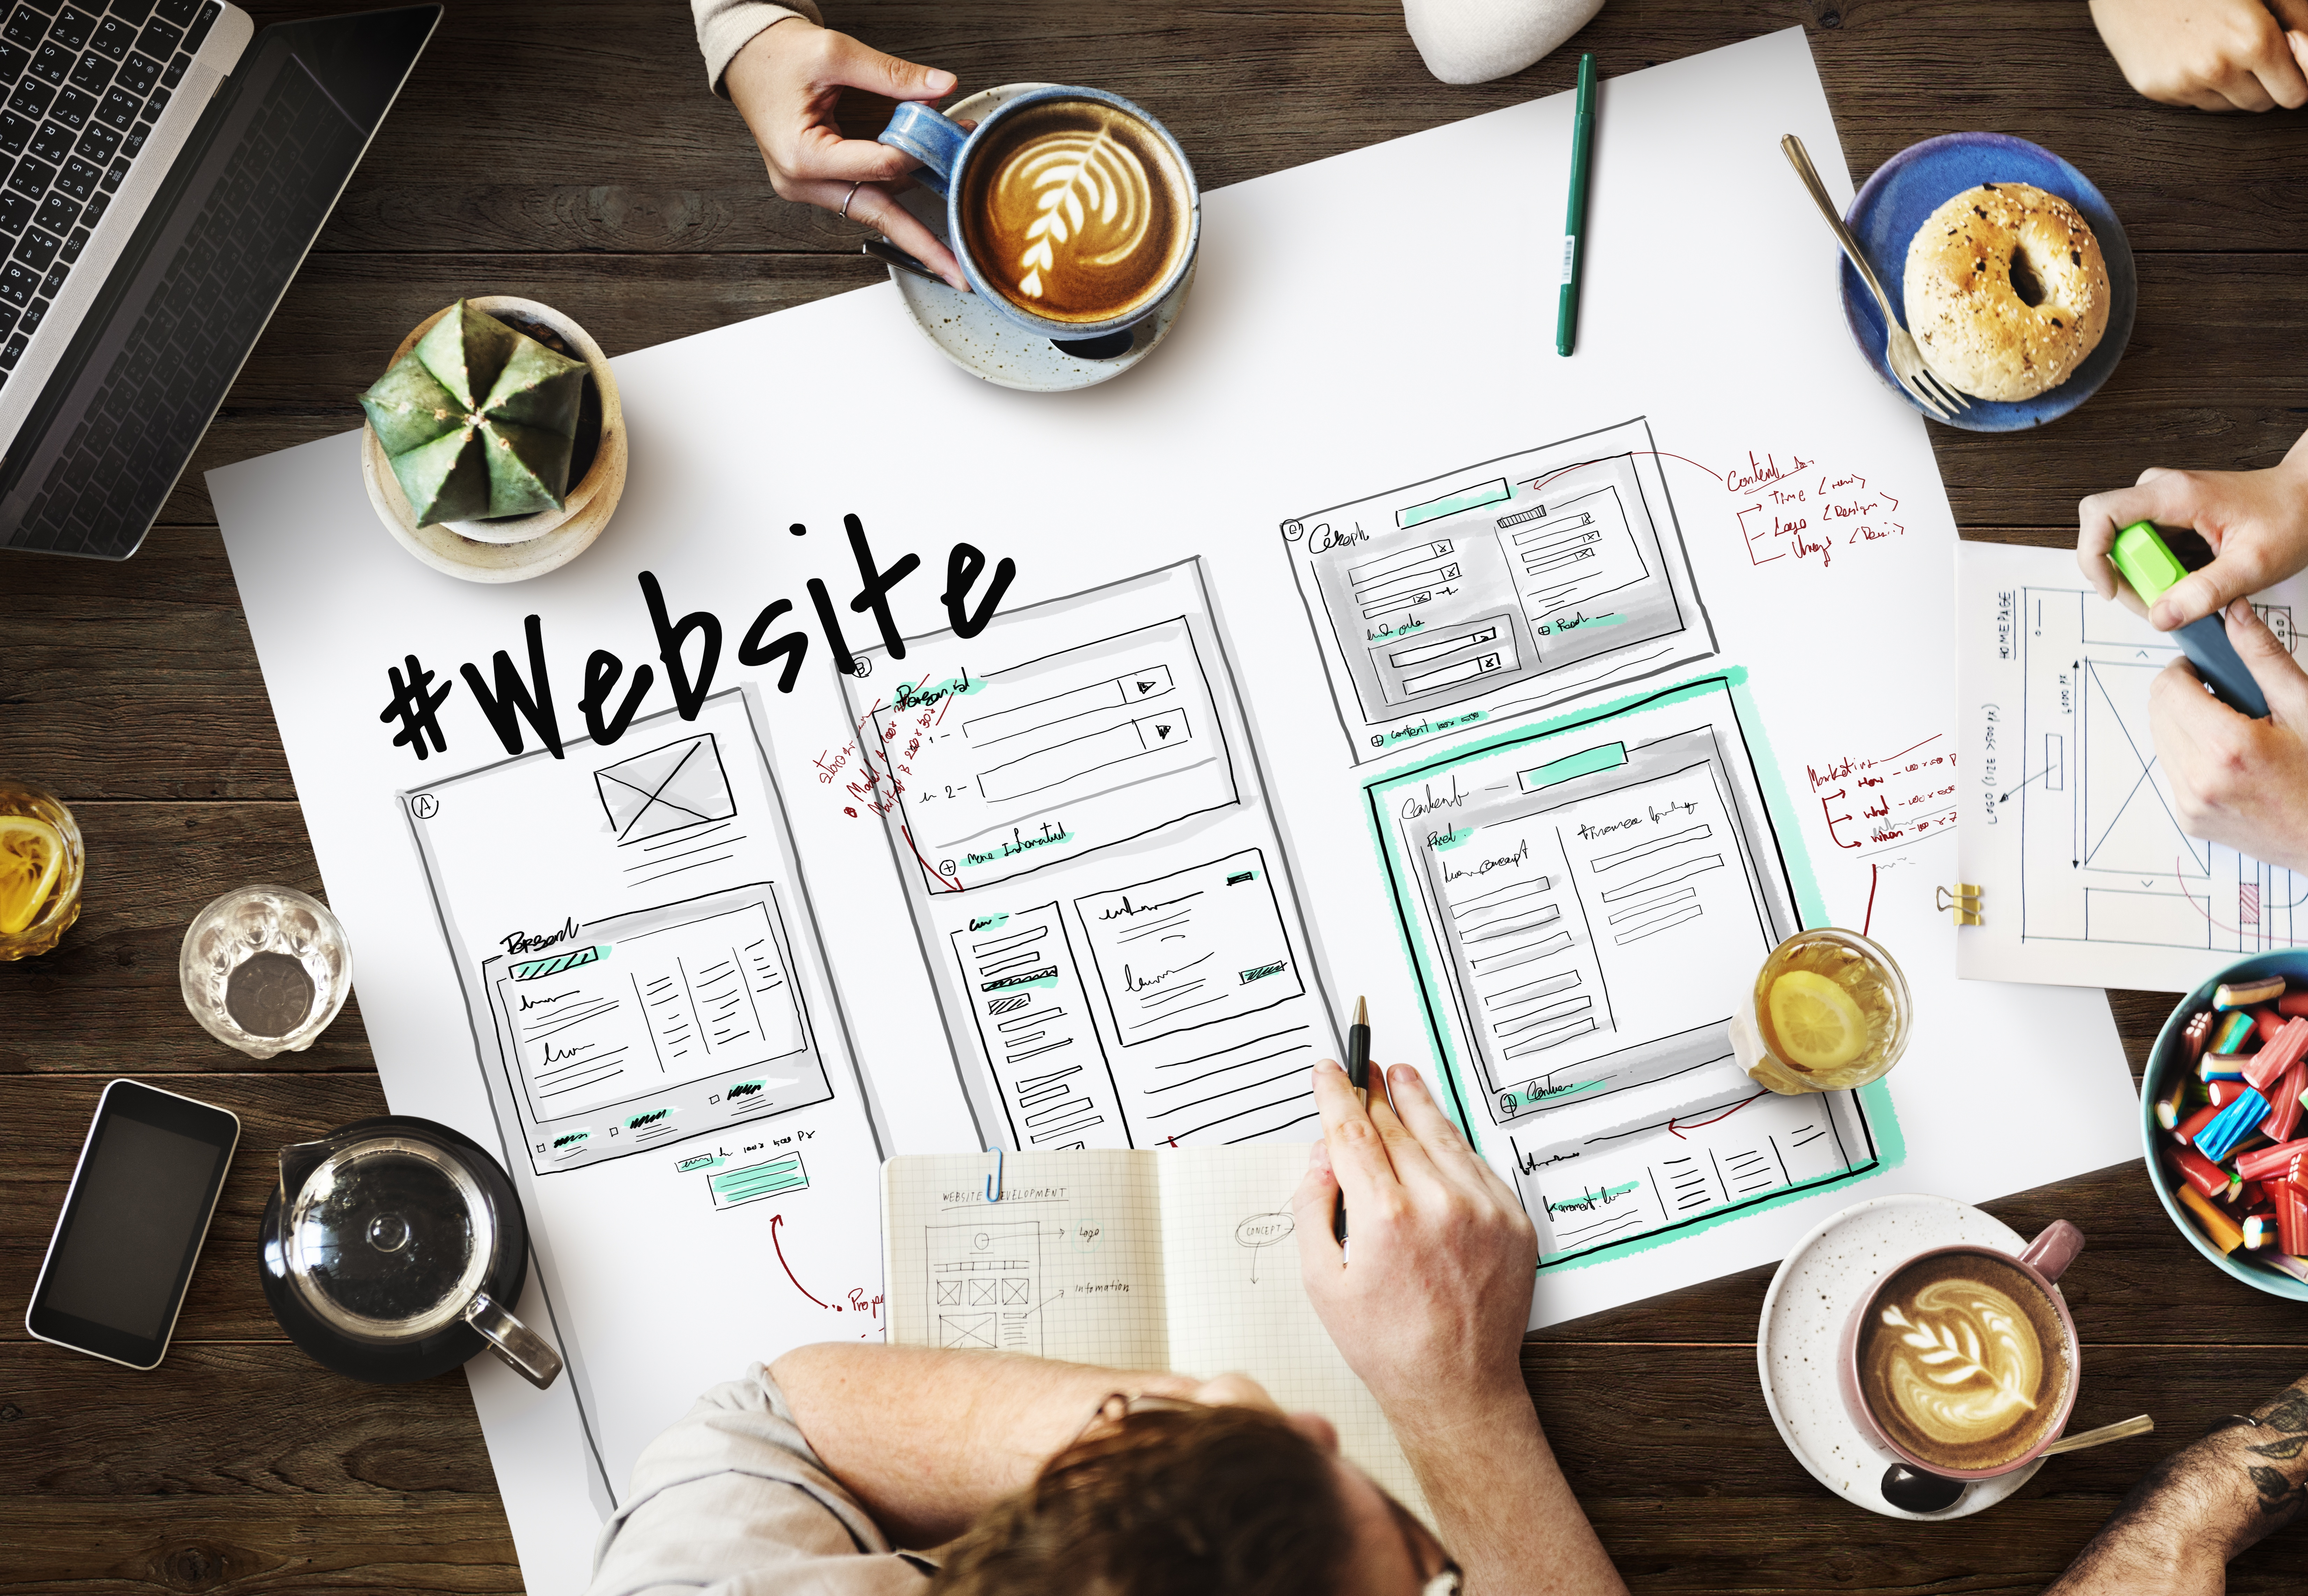 What's Keeping Your Website From Being Great